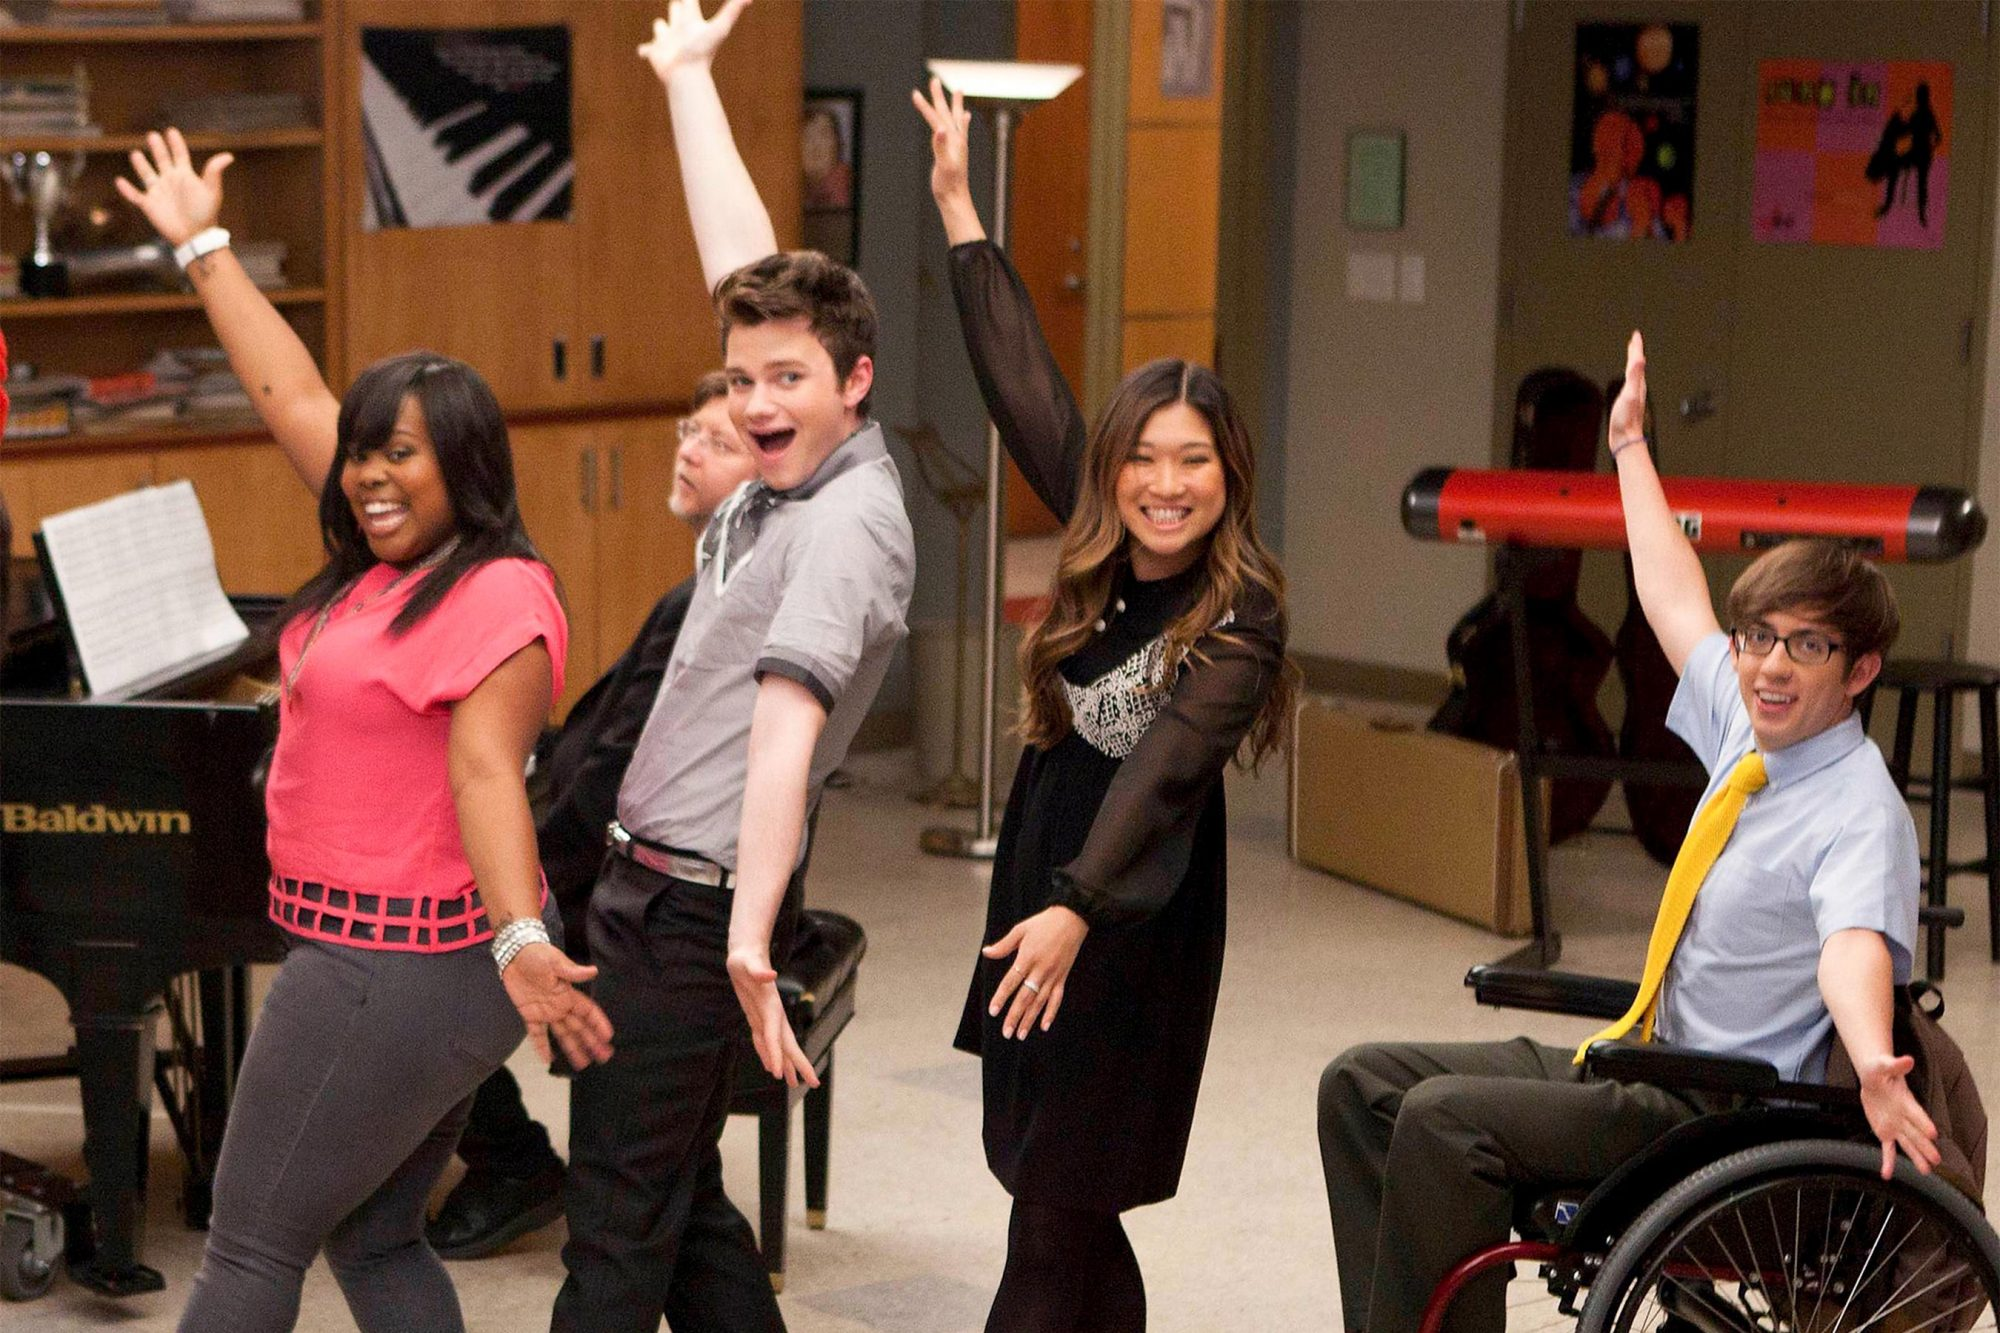 """GLEE: The glee club performs in the """"Goodbye"""" season finale episode of GLEE airing Tuesday, May 22 (9:00 - 10:00 PM ET/PT) on FOX. Pictured L-R:, Amber Riley, Chris Colfer, Jenna Ushkowitz and Kevin McHale. (Photo by FOX via Getty Images)"""